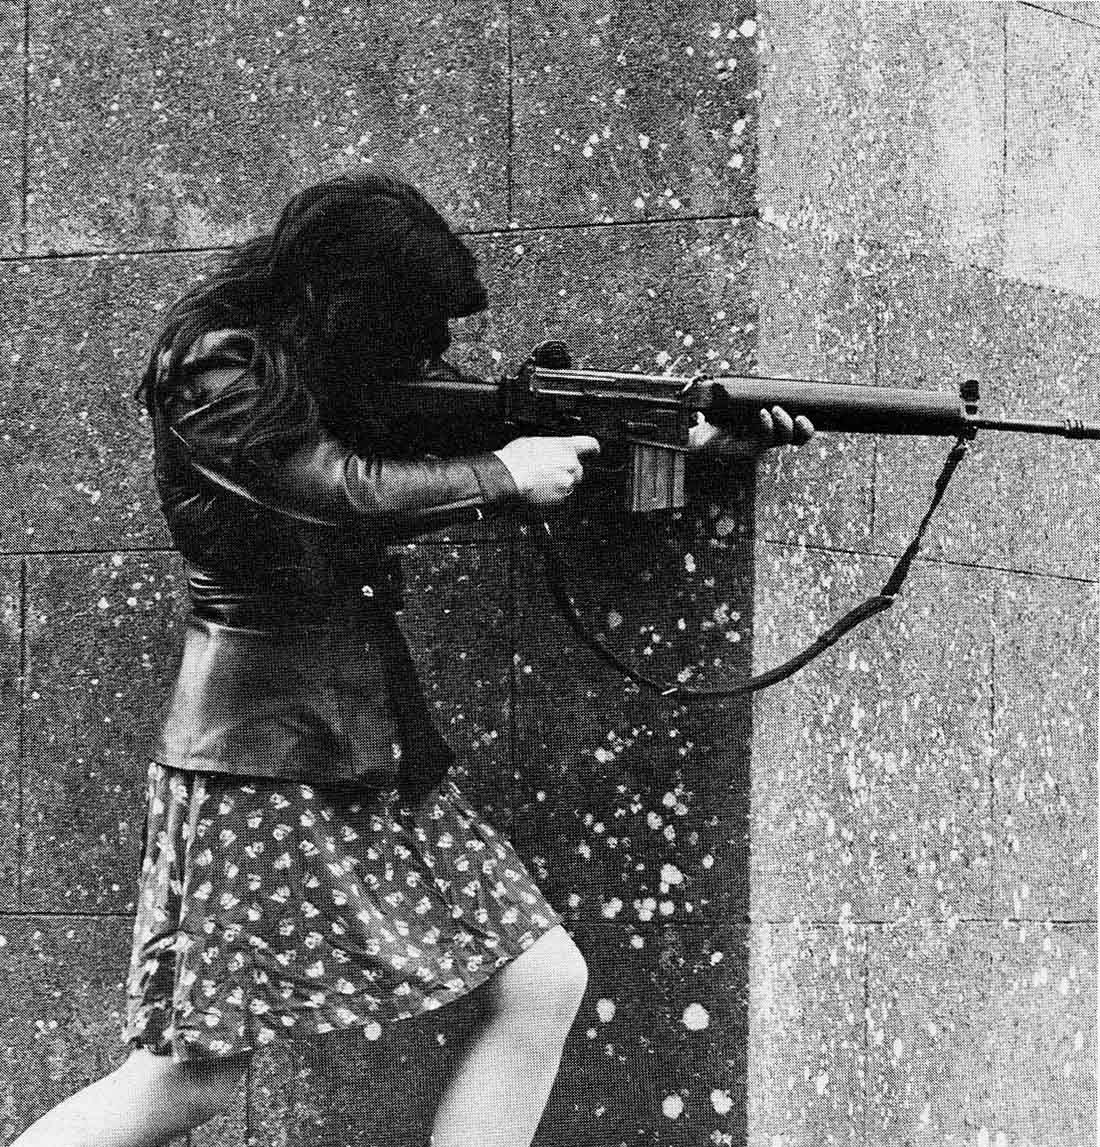 A woman IRA volunteer on active service in West Belfast with an AR18 assault rifle. 1970s